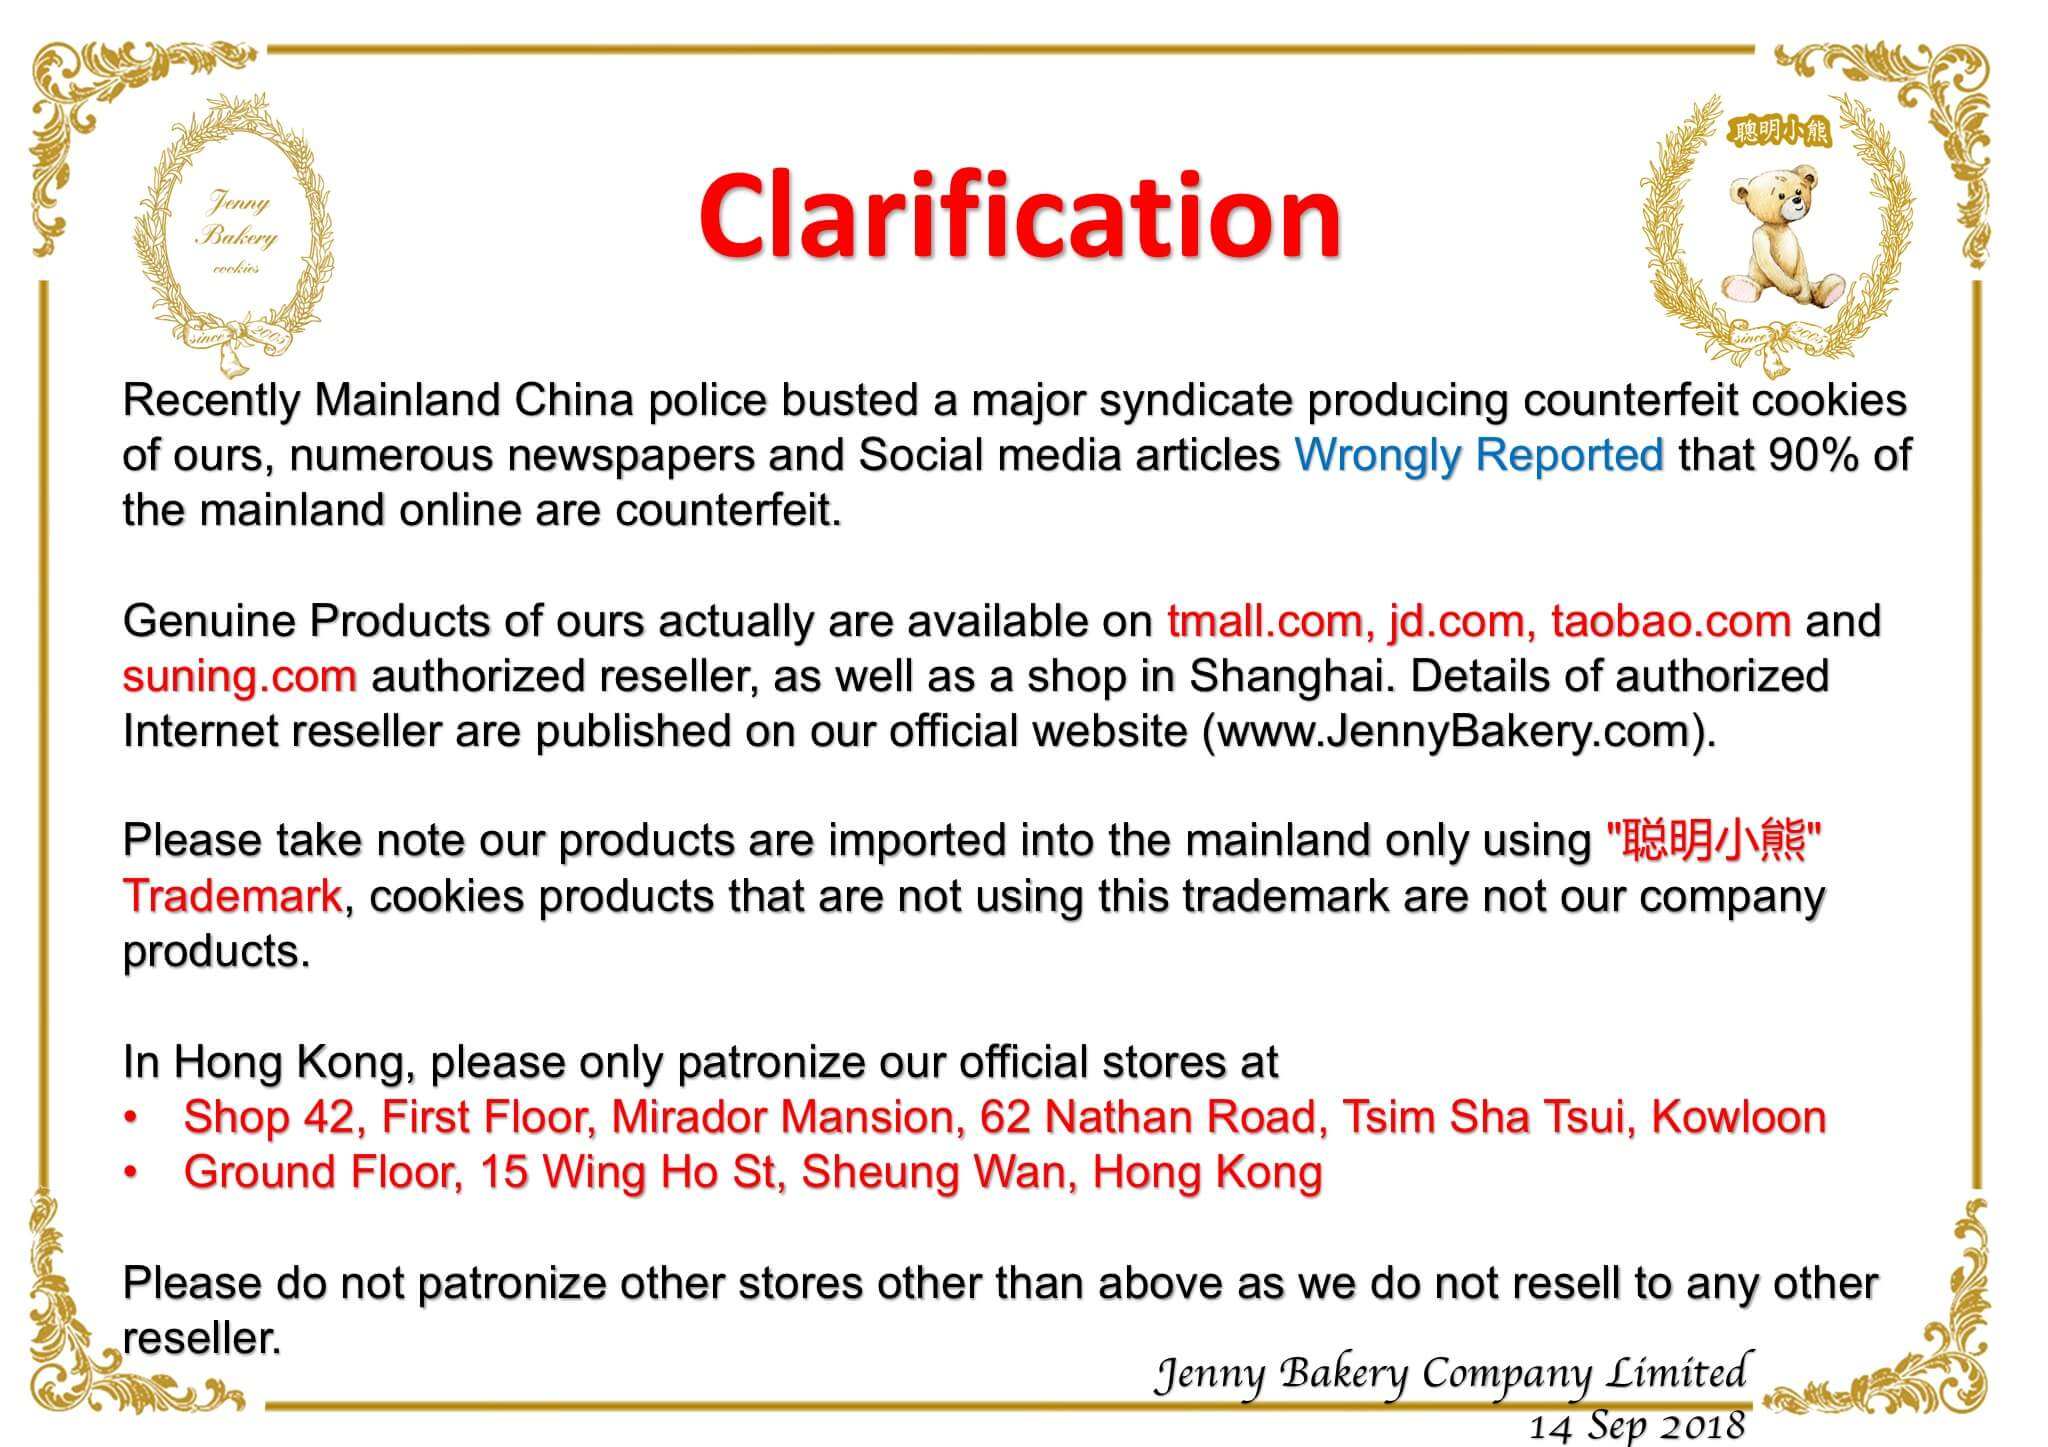 """Jenny Bakery Clarification cookies Recently Mainland China police busted a major syndicate producing counterfeit cookies of ours, numerous newspapers and Social media articles Wrongly Reported that 90% of the mainland online are counterfeit. Genuine Products of ours actually are available on tmall.com, jd.com, taobao.com and suning.com authorized reseller, as well as a shop in Shanghai. Details of authorized Internet reseller are published on our official website (www.JennyBakery.com). Please take note our products are imported into the mainland only using """"AŠ DIJE"""" Trademark, cookies products that are not using this trademark are not our company products. In Hong Kong, please only patronize our official stores at Shop 42, First Floor, Mirador Mansion, 62 Nathan Road, Tsim Sha Tsui, Kowloon Ground Floor, 15 Wing Ho St, Sheung Wan, Hong Kong O Please do not patronize other stores other than above as we do not resell to any other reseller. Jenny Bakery Company Limited 14 Sep 2018"""